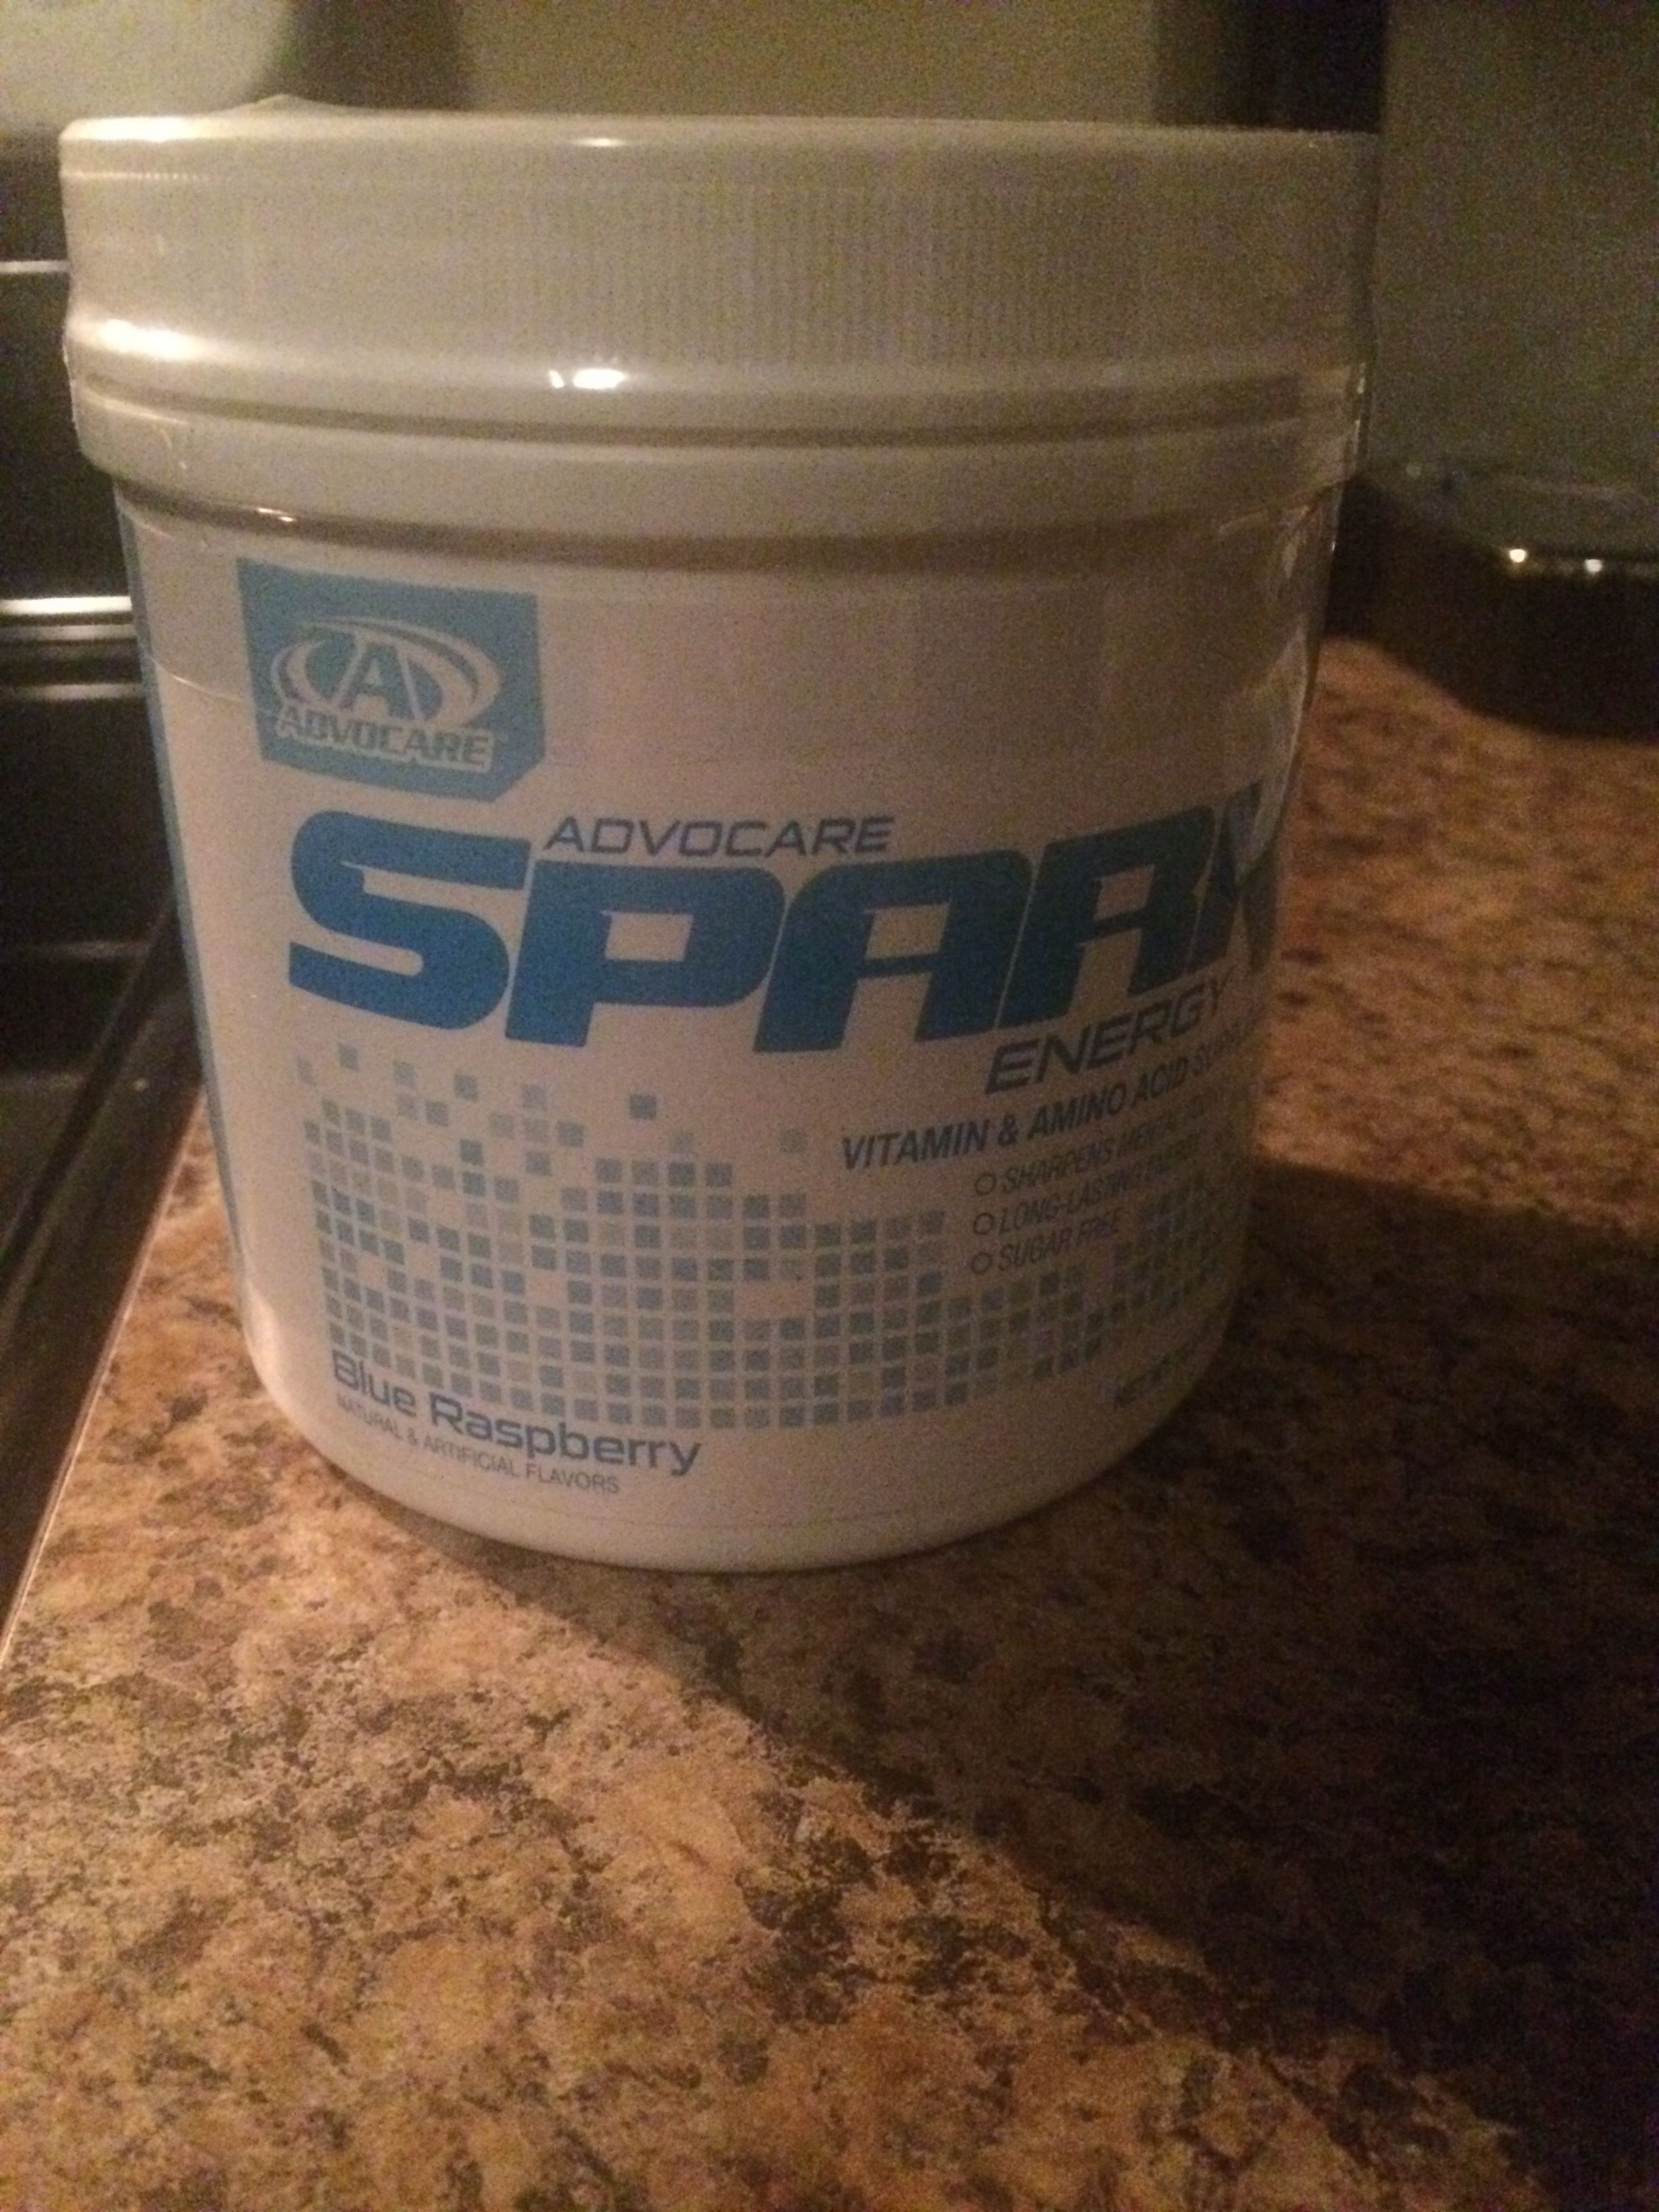 Finally reunited my one of my new favorite advocare spark